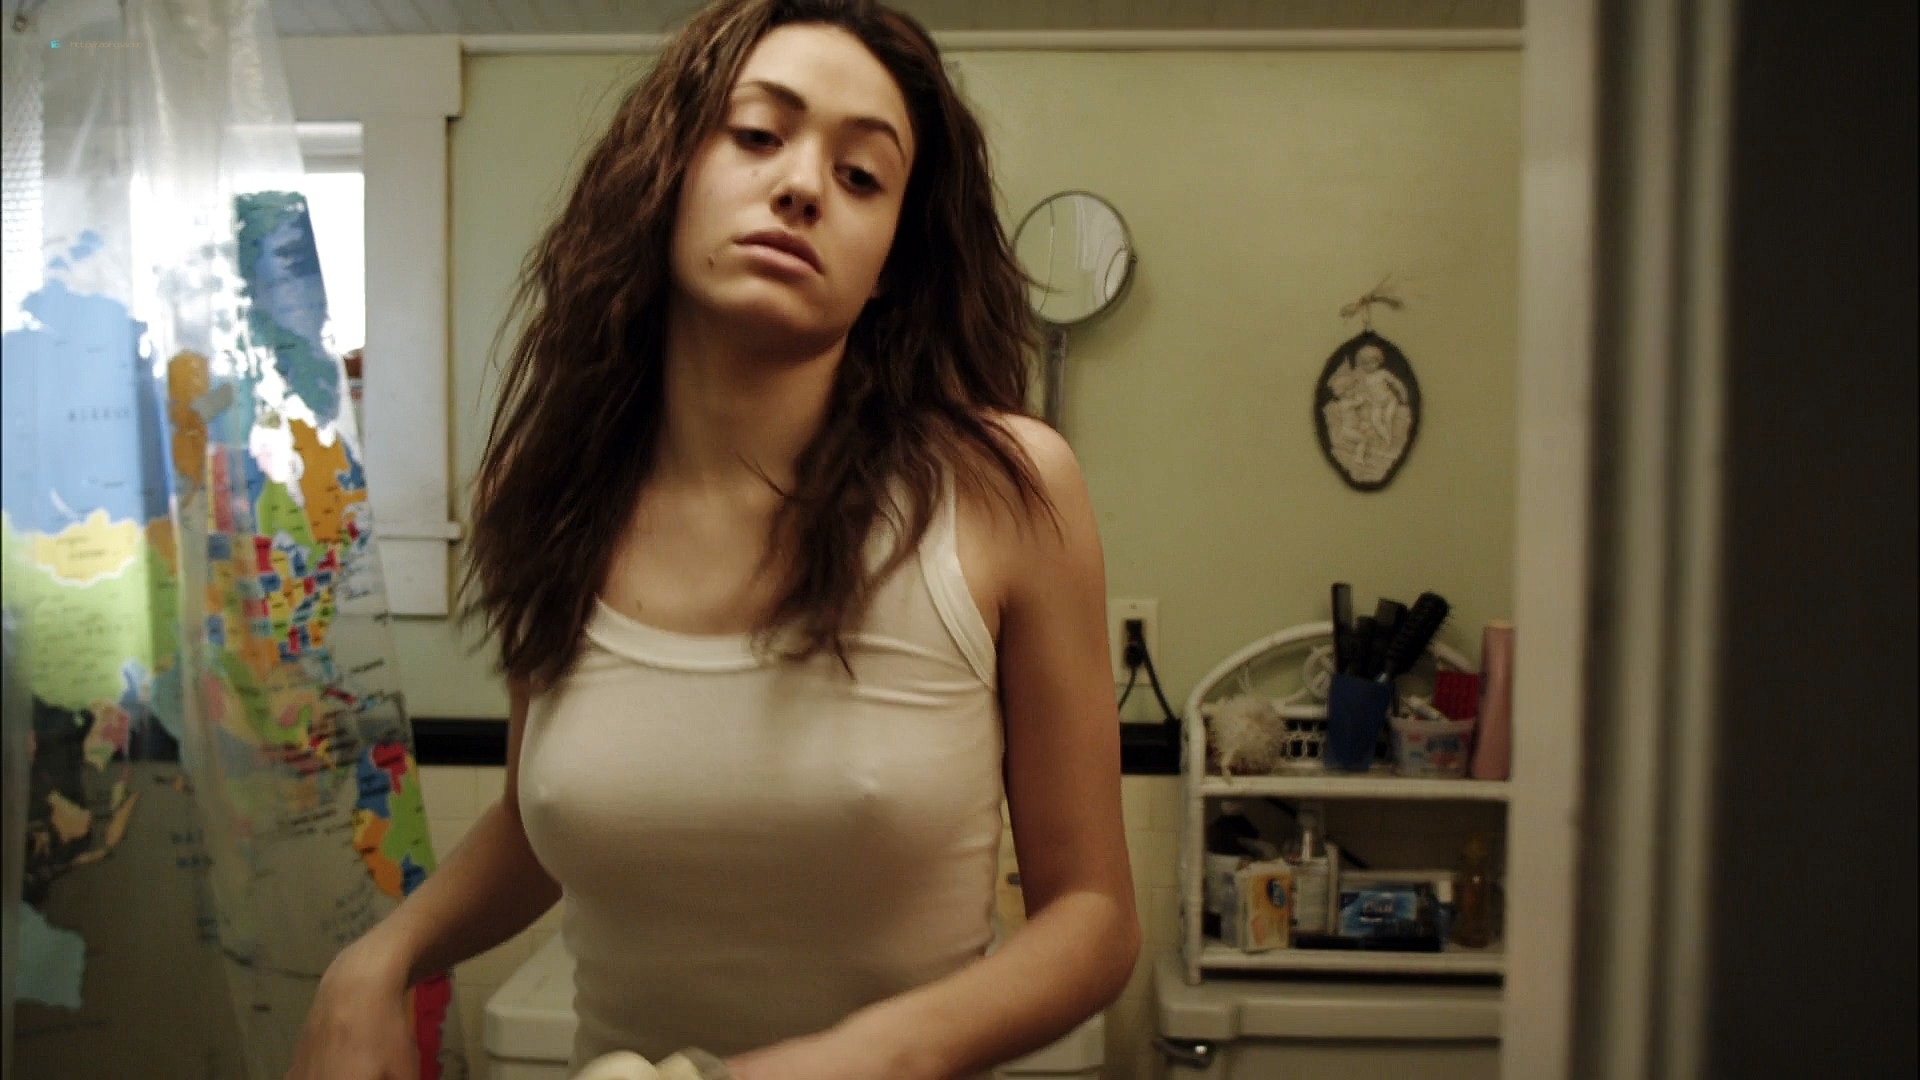 Emmy Rossum nude topless in Shameless (2011) - s1e1 HD 1080p BluRay (13)